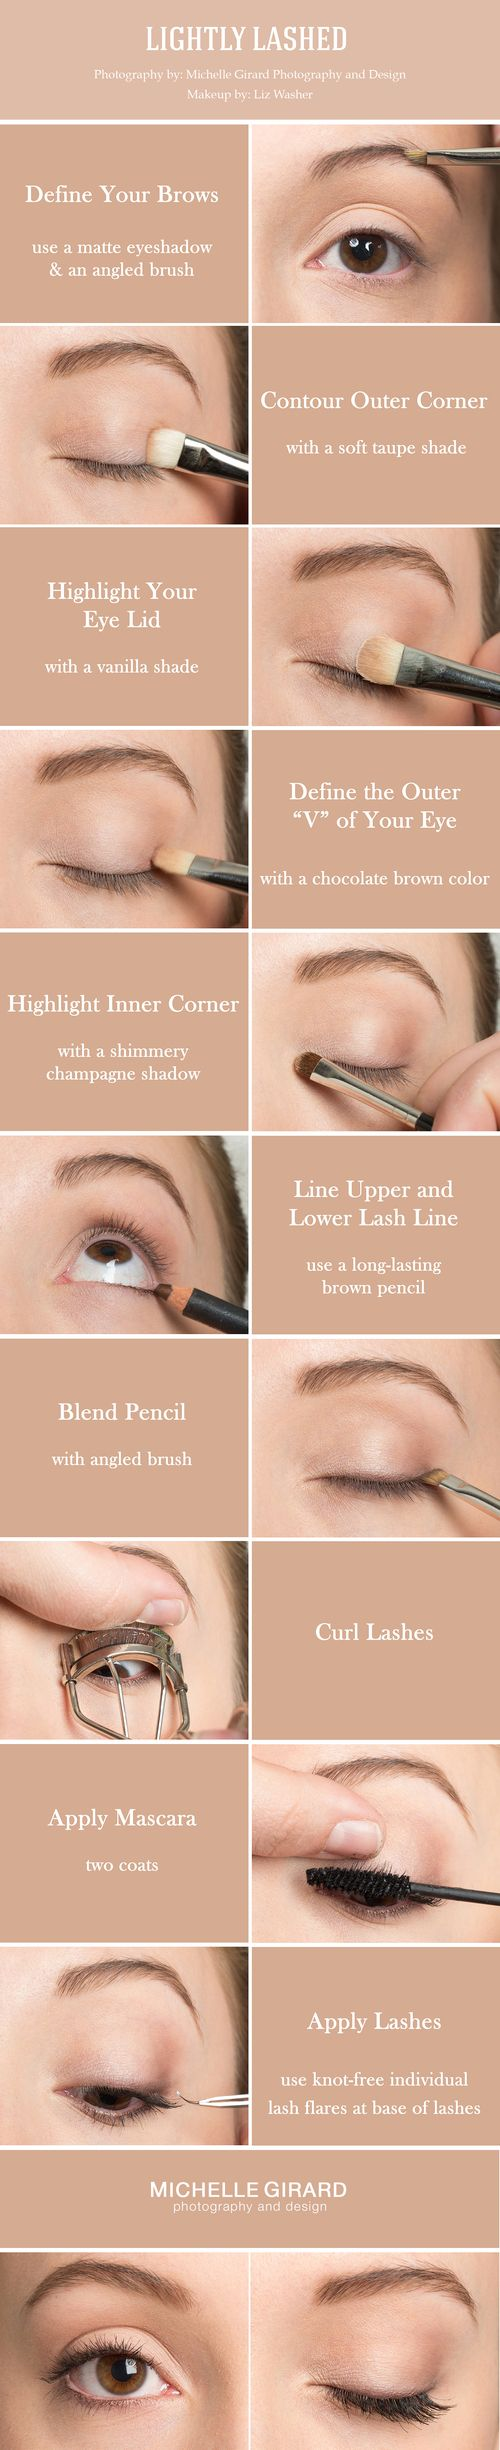 Clean, Natural Makeup Tutorial with Lovely  Lashes :: Inspired by Shailene Woodley :: As seen on Style Me Pretty :: Liz Washer Makeup :: Michelle Girard Photography  Design